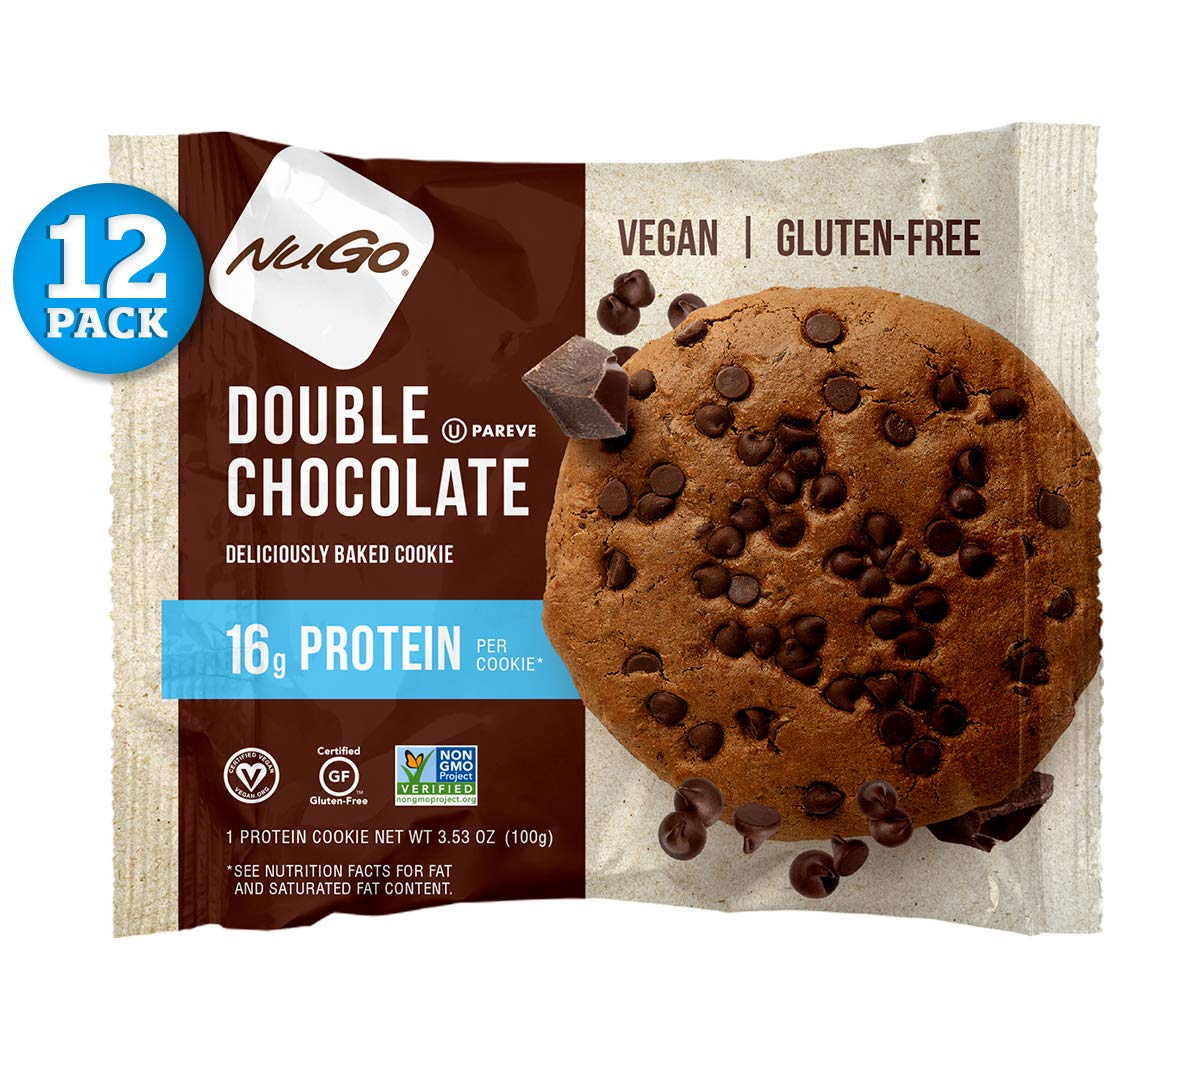 NuGo Protein Cookie, Double Chocolate, 16g Vegan Protein, Gluten Free, Soy Free, 12 Count by NuGo (Image #1)